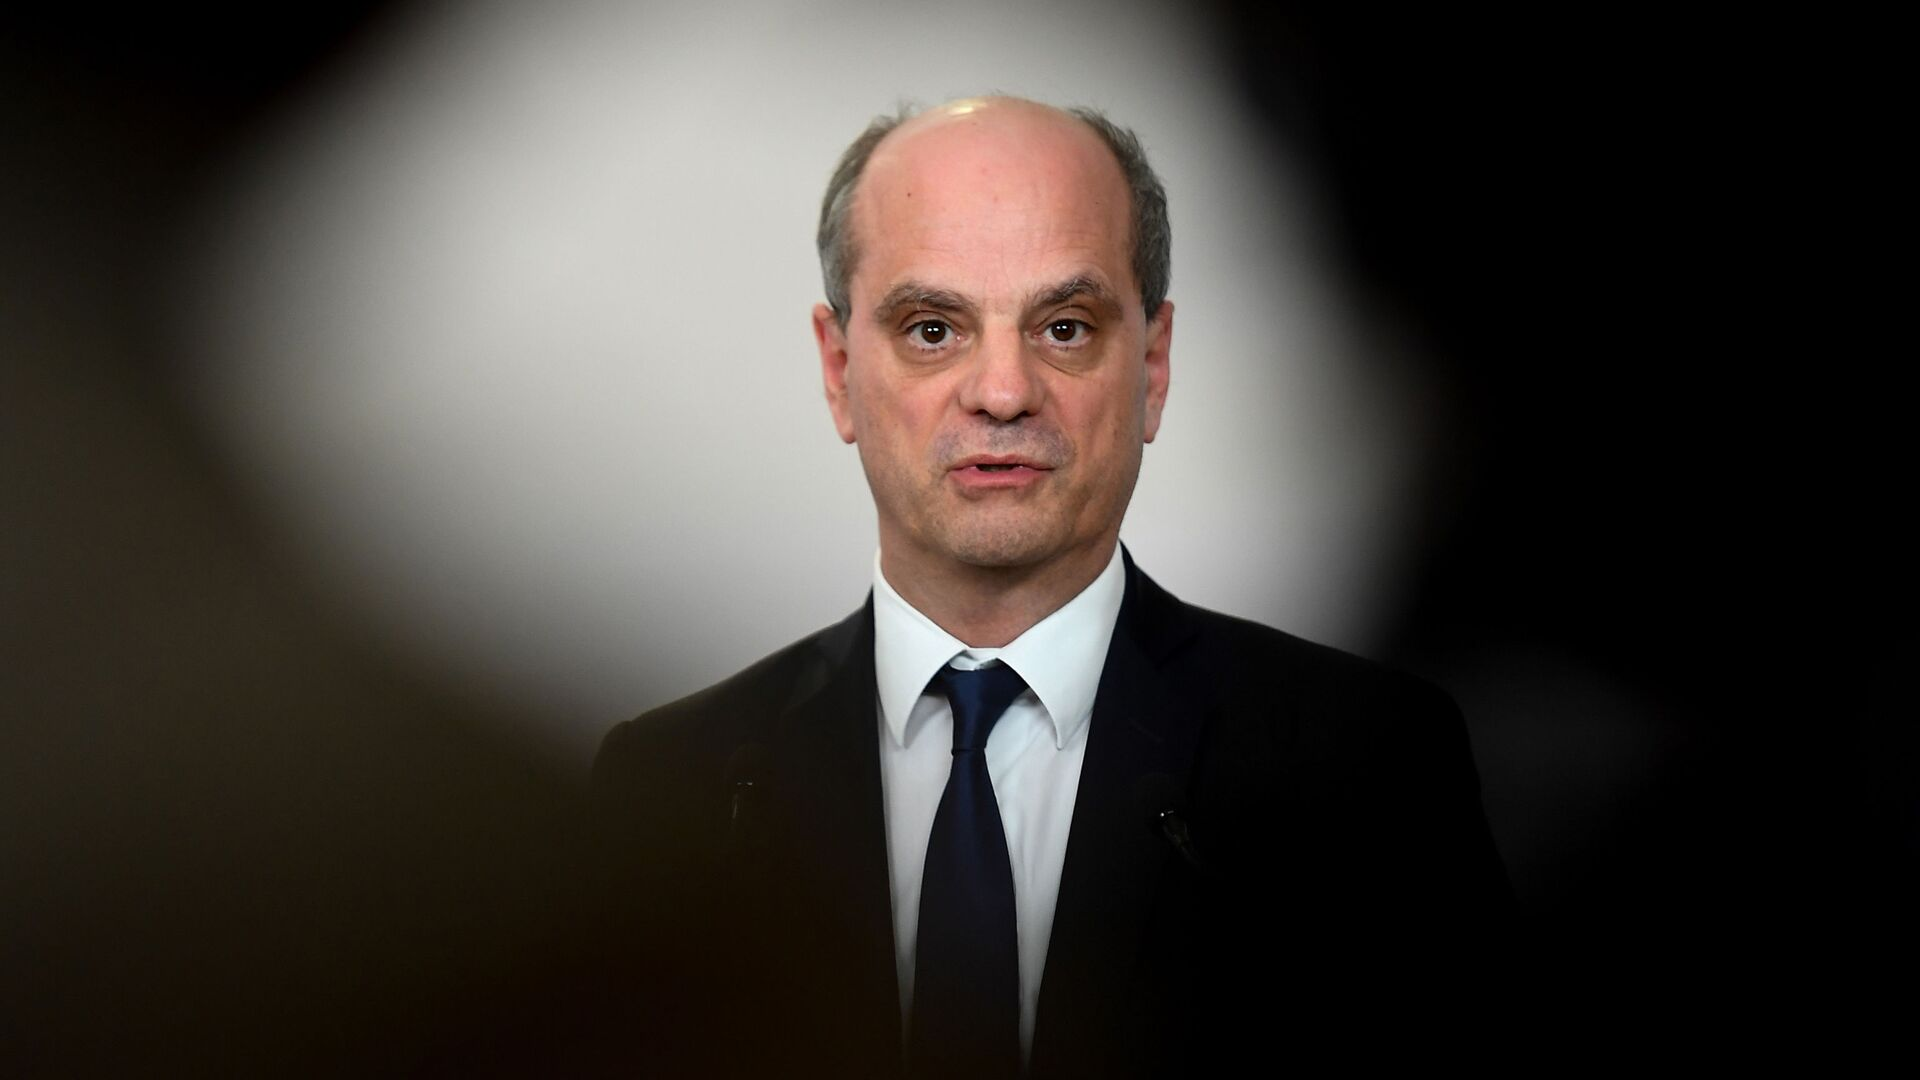 French Education Minister Jean-Michel Blanquer speaks on the coronavirus measures after the weekly cabinet meeting during a press conference at the Hotel Matignon in Paris, Thursday, May 7, 2020. France is easing the Covid-19 lockdown measures on May 11. (Christophe Archambault/Pool Photo via AP) - Sputnik France, 1920, 02.09.2021